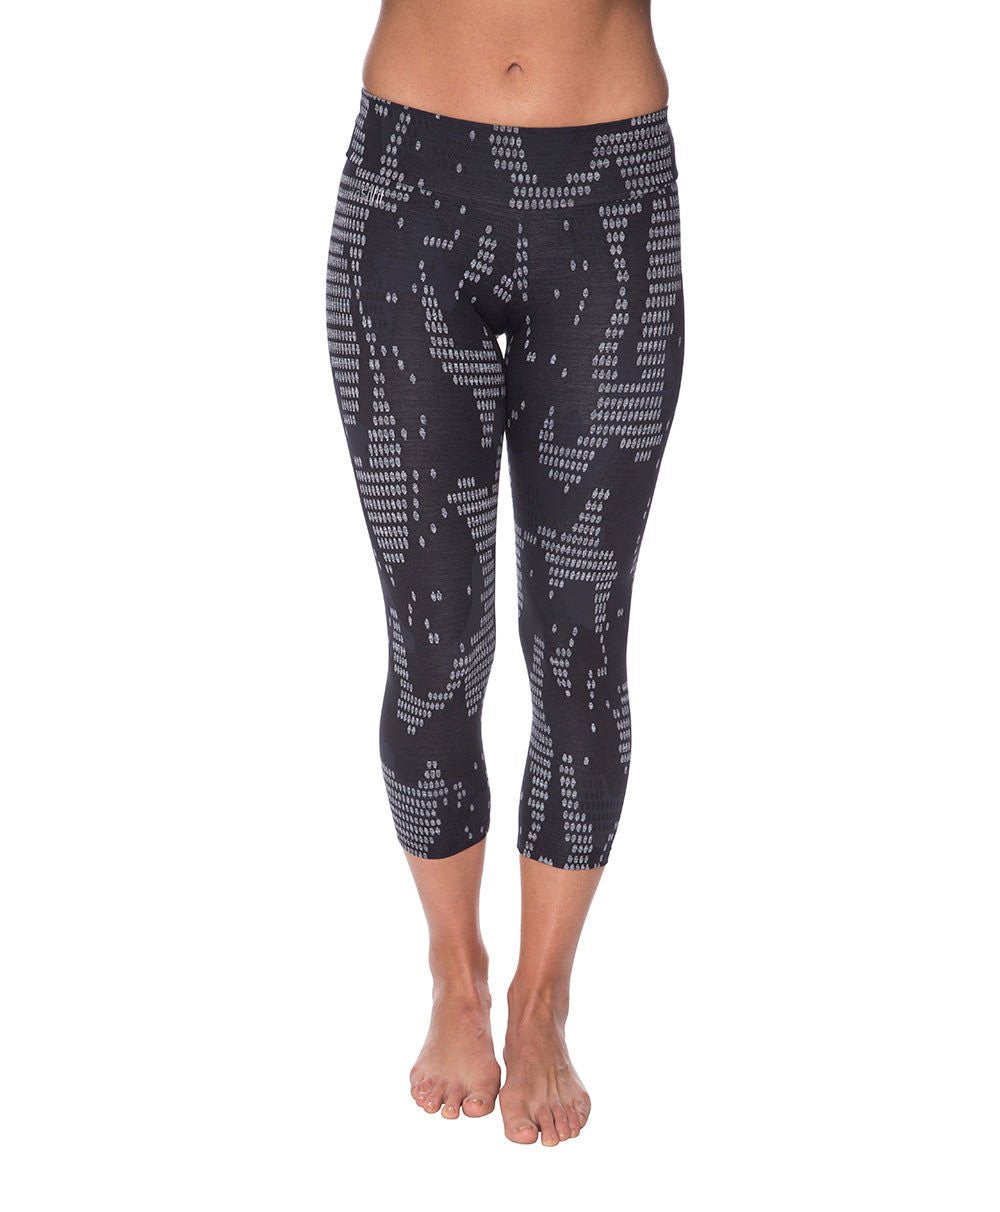 Side view product image for Brasilfit Bangkok Calf Length activewear leggings.  Bangkok leggings are part of our textured activewear legging collection that is focused on performance, high compression activewear.